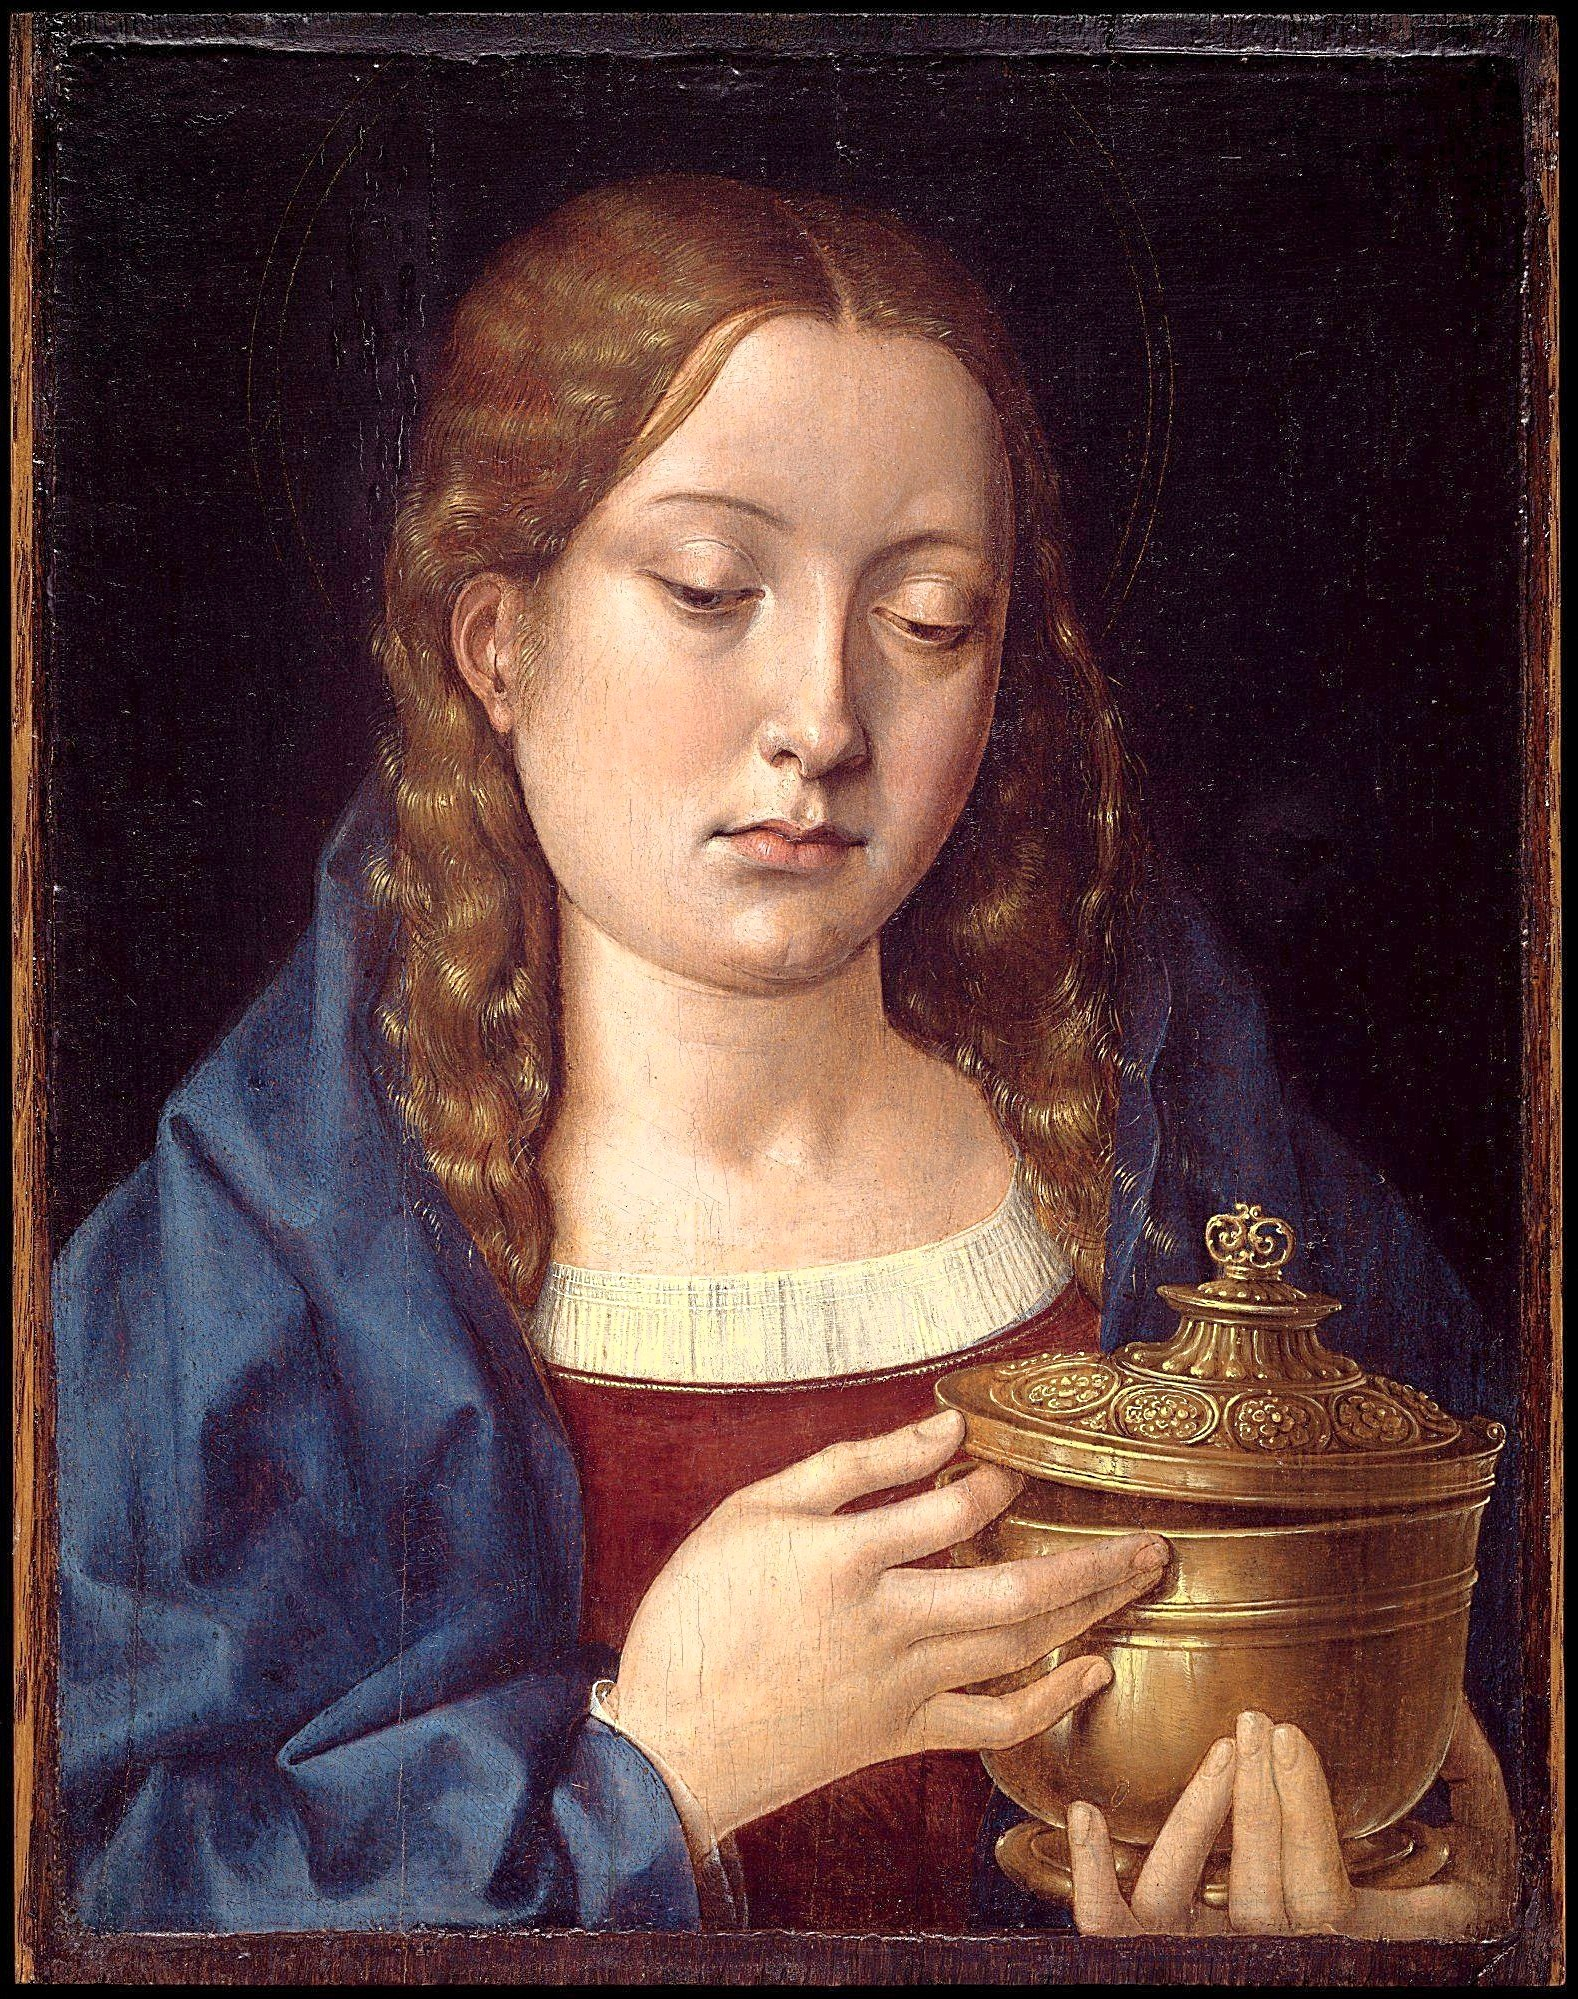 Catherine_of_Aragon_as_Mary_Magdalene.jp